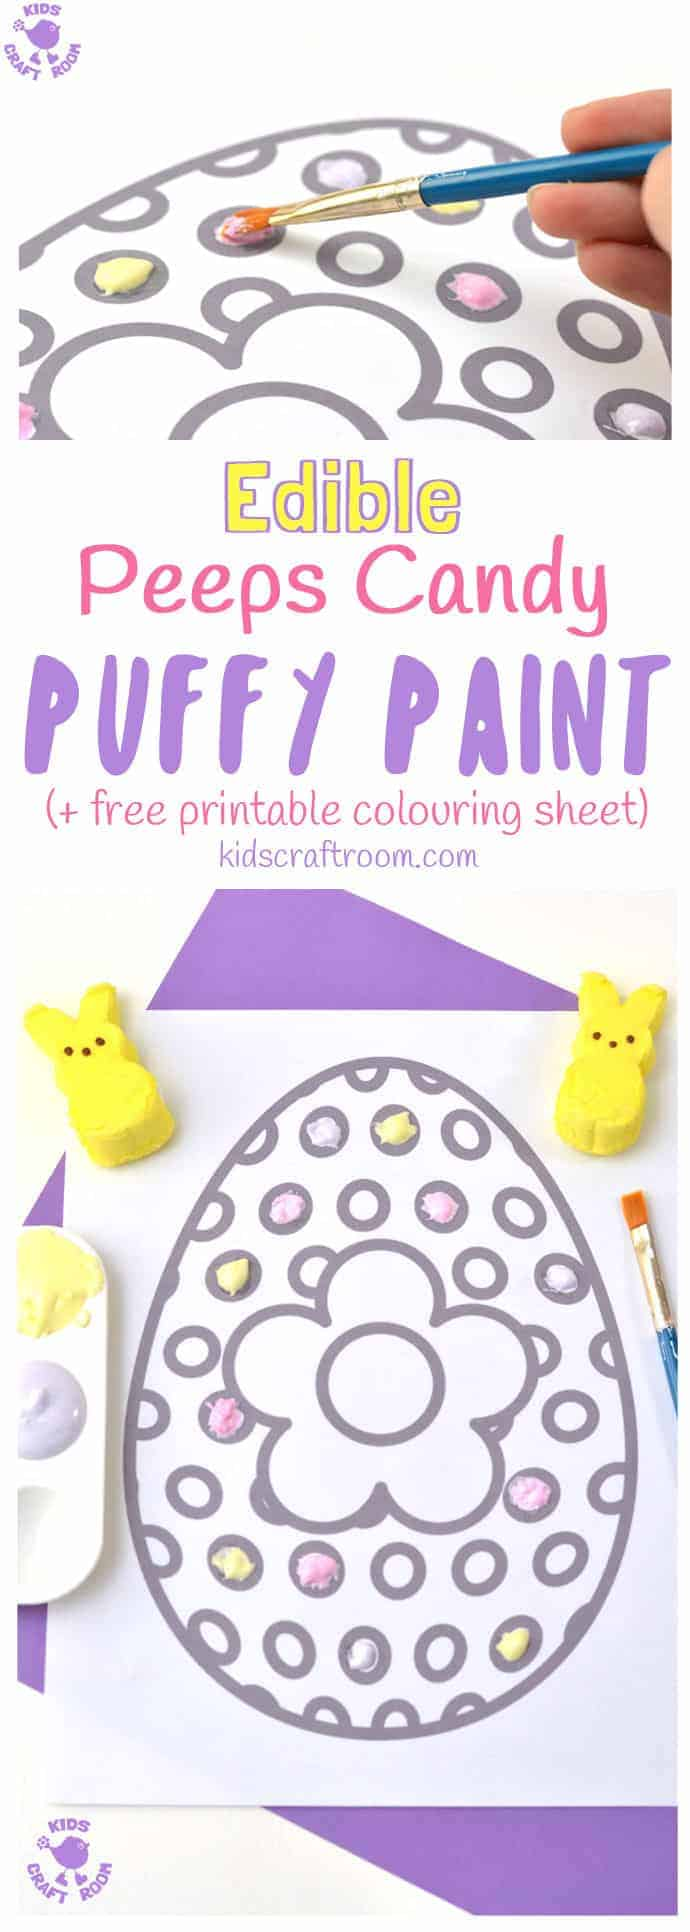 Here's a wonderfully easy Peeps Edible Puffy Paint Recipe you can make in just minutes. This homemade paint is fluffy and soft and comes in gorgeous pastel colours perfect for Spring and Summer art. Kids will have a finger licking good time getting creative with this fun and delicious sensory painting idea! #paintrecipe #painting #homemadepaint #ediblepaint #fingerpaintrecipe #puffypaint #puffypaintrecipe #easter #printables #kidsart #kidscraftroom #kidscrafts